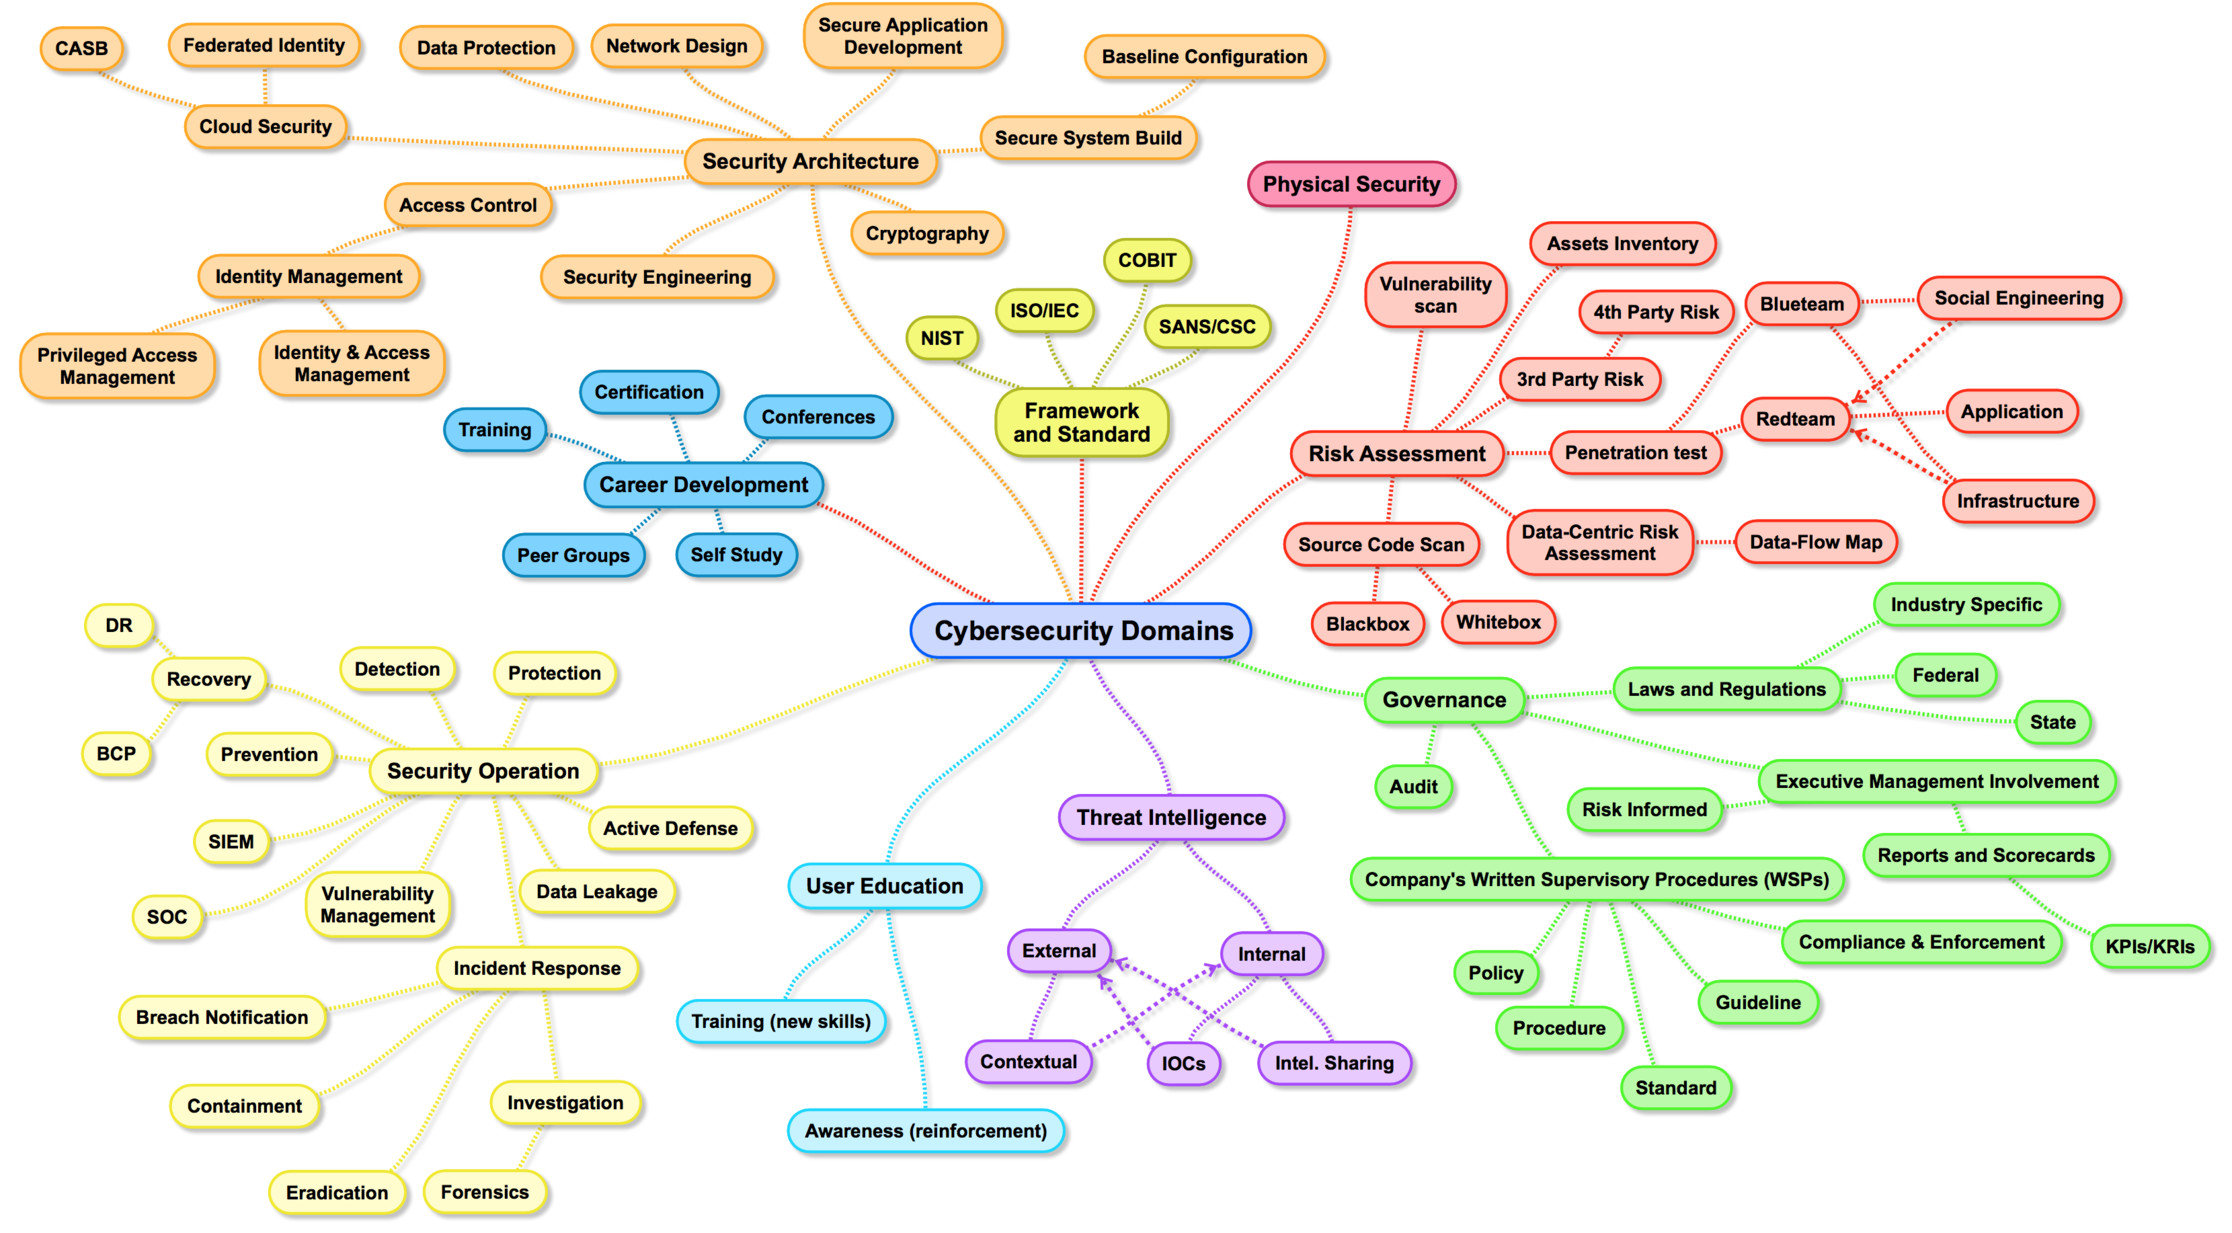 Mindmap Cybersercurity Domains Version 2.0